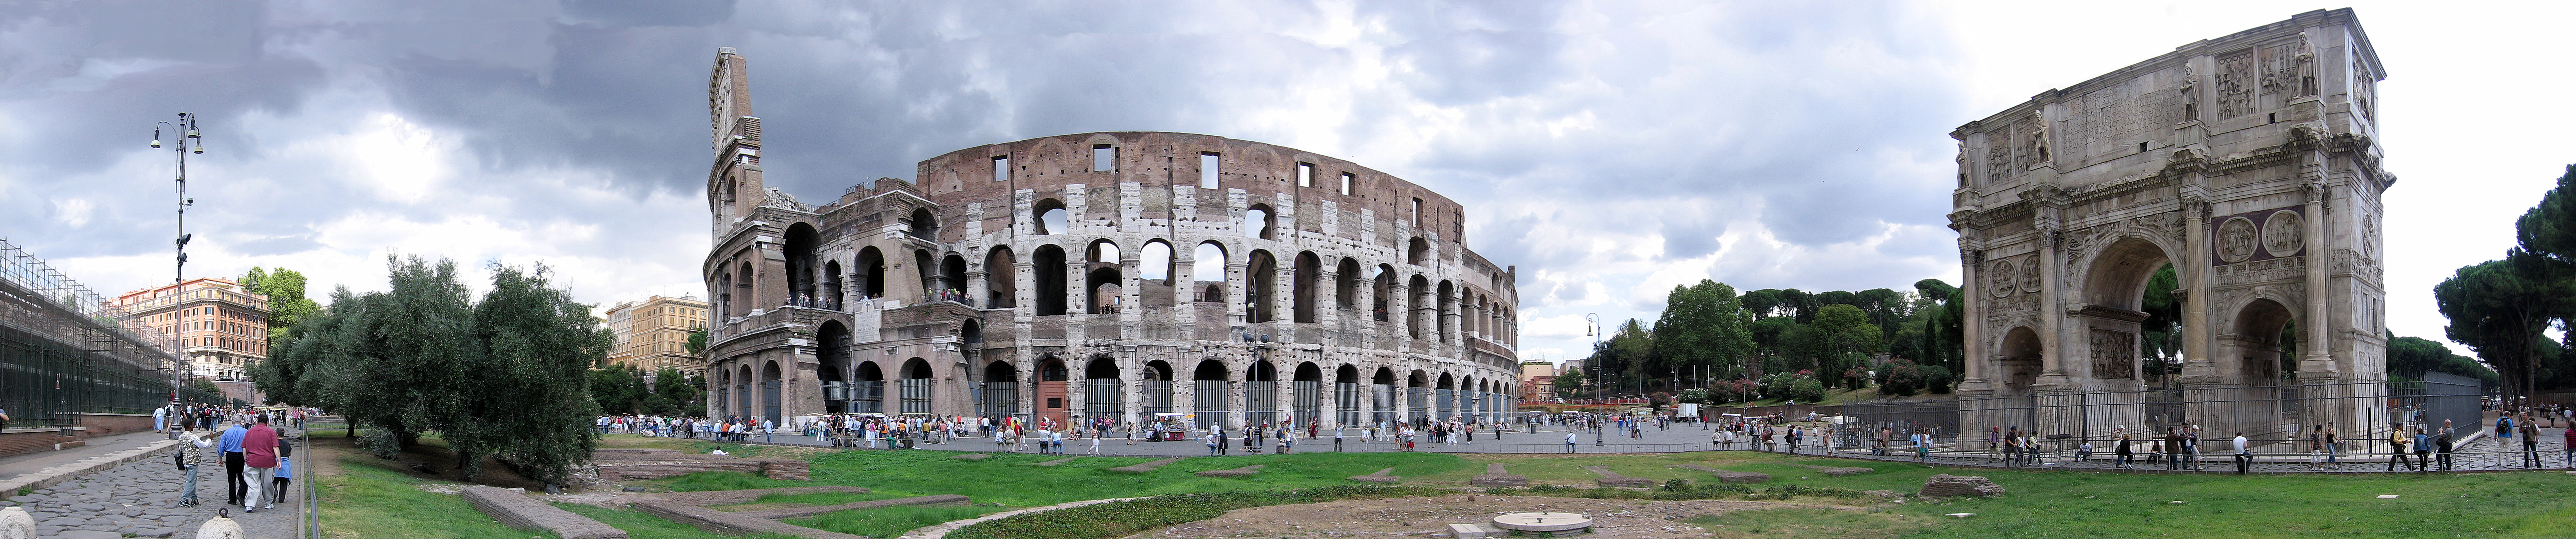 golden ages Colosseum-panoramic.view